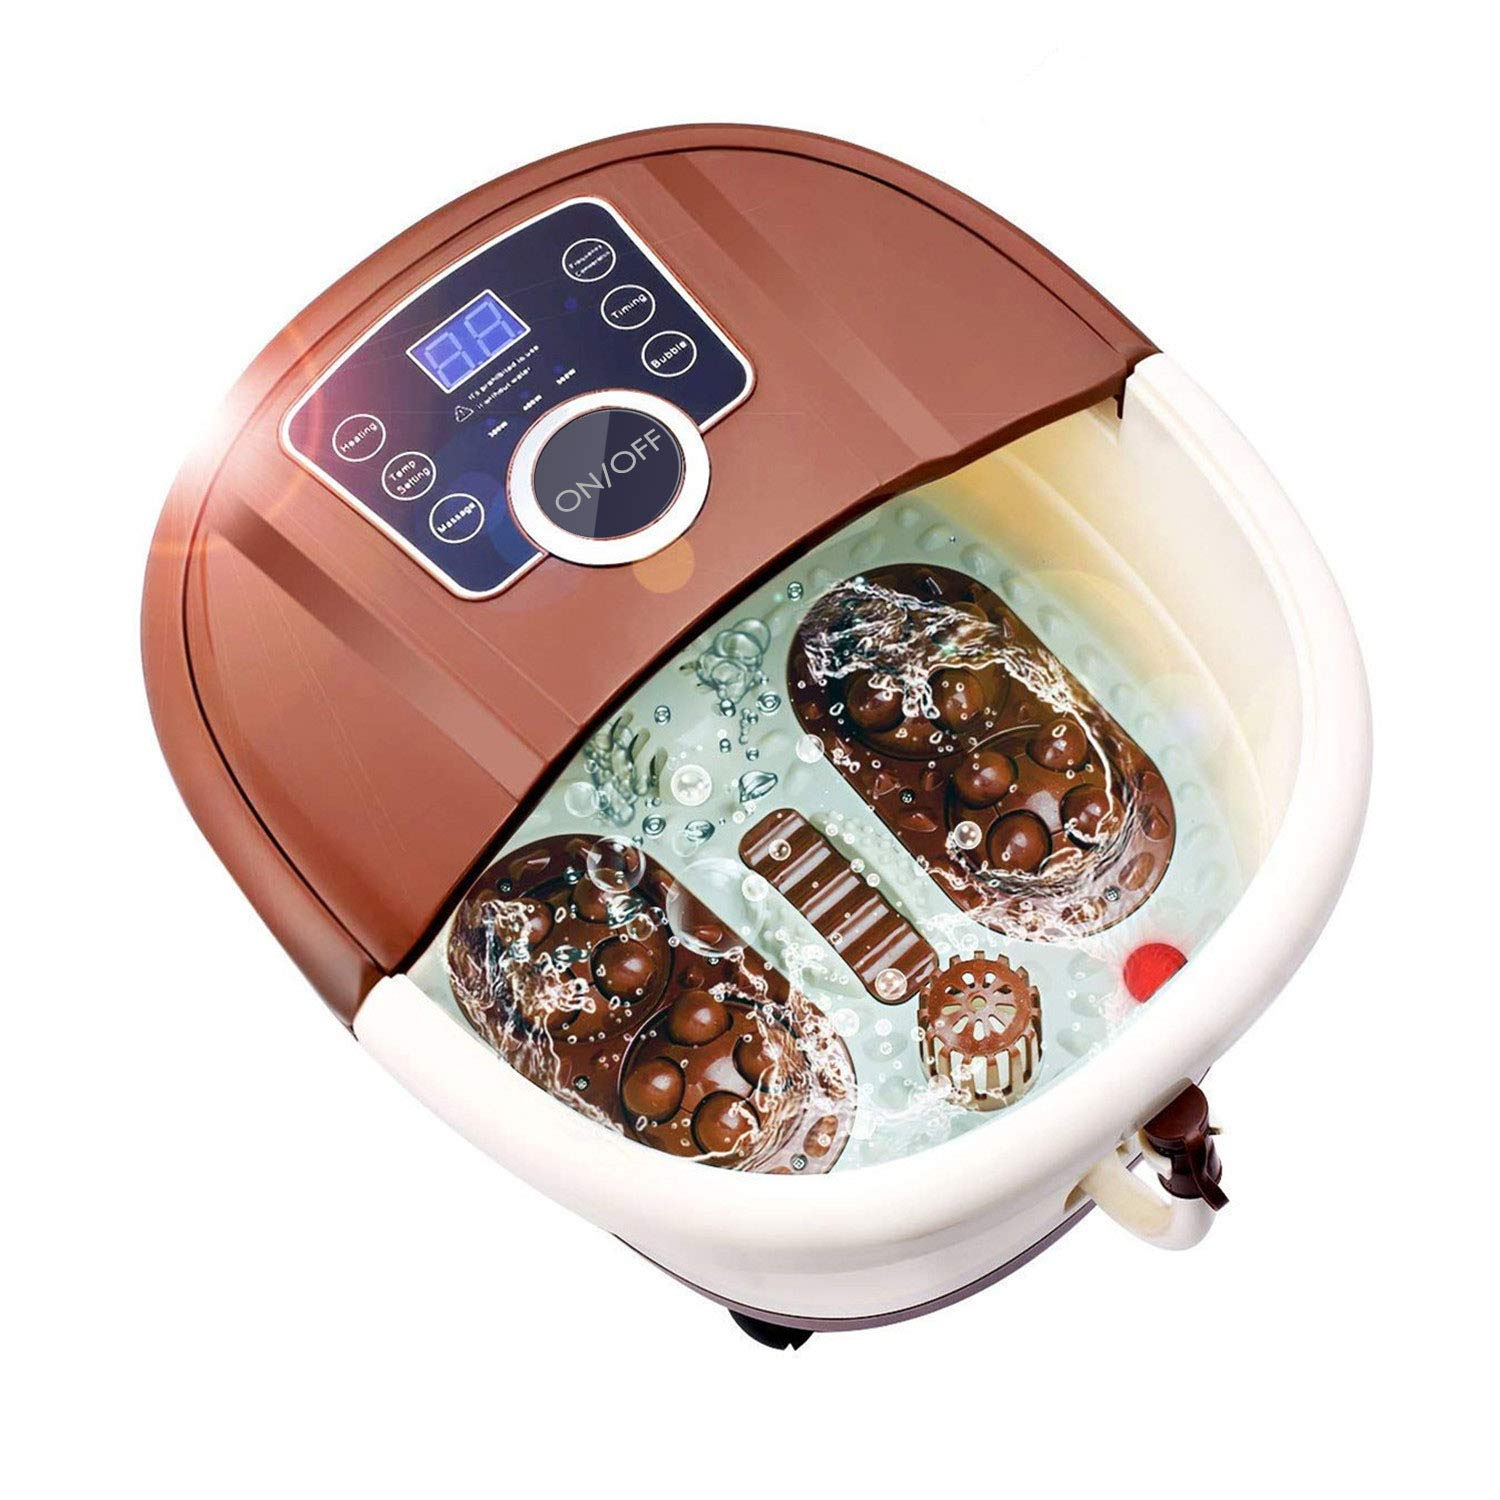 Foot Spa Bath Massager with Heat, 16 Pedicure Spa Motorized Shiatsu Roller Massaging Acupuncture Point, Frequency Conversion, O2 Bubbles, Adjustable Time Temperature, LED Display